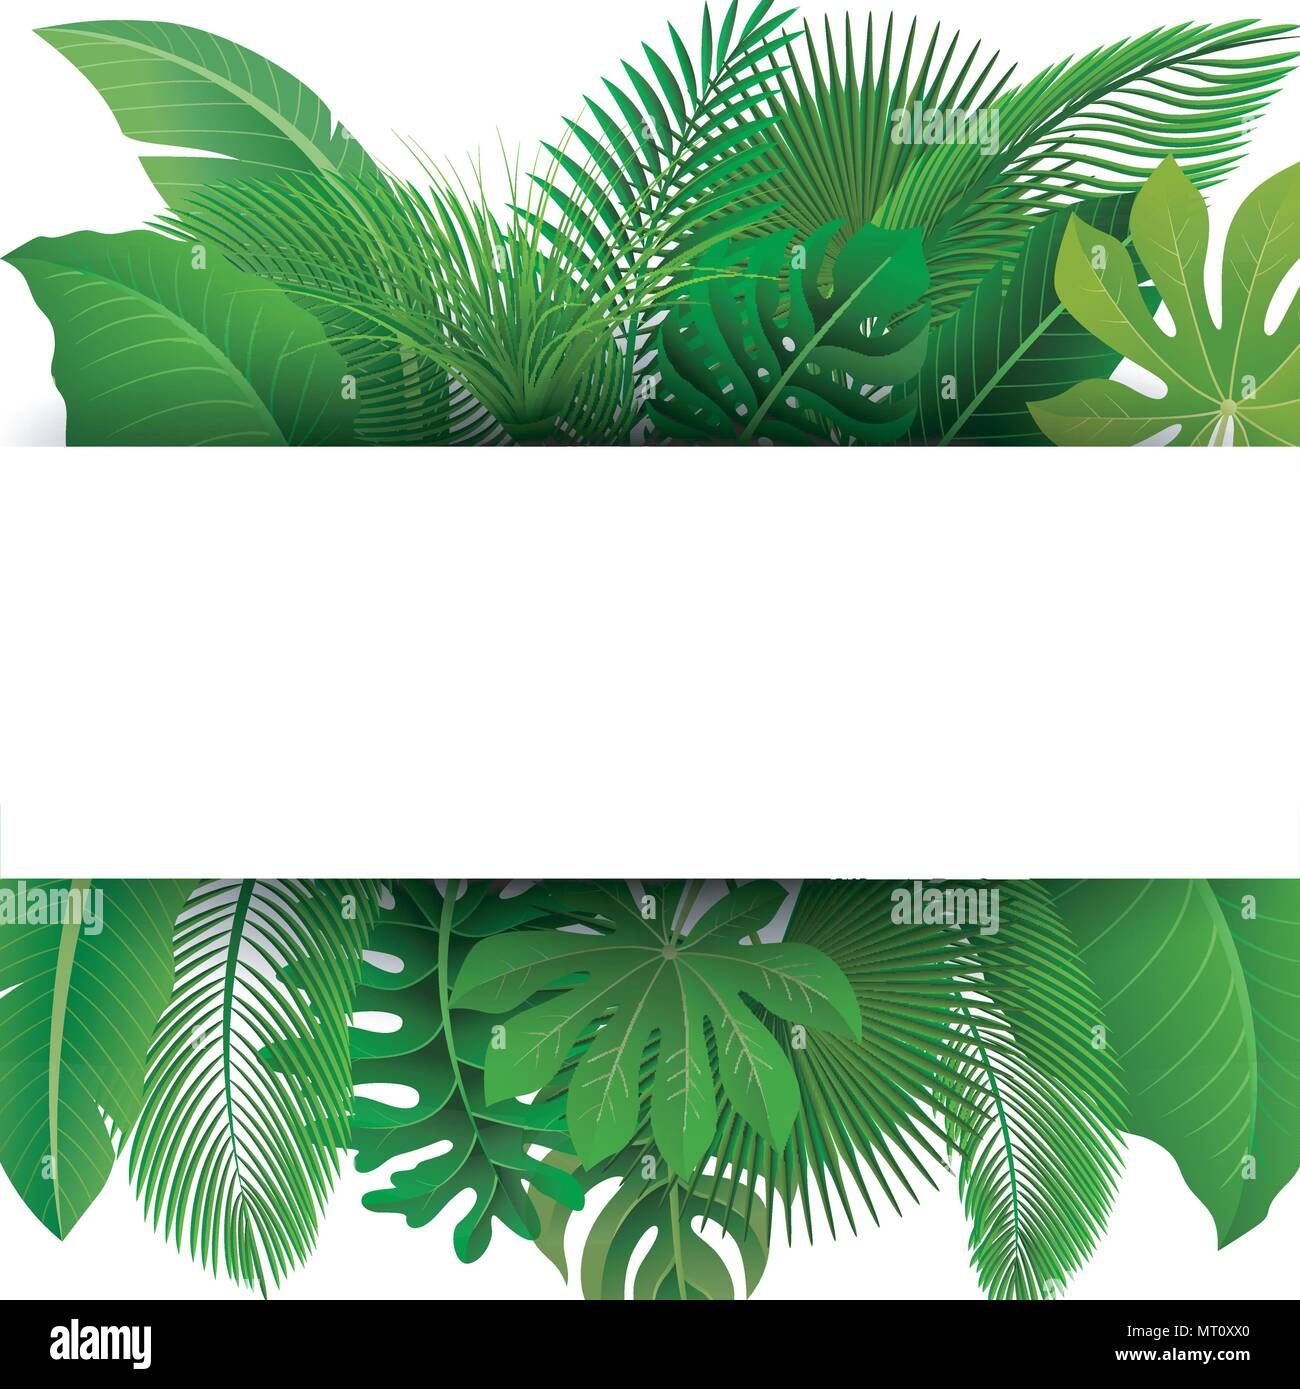 Sign With Text Space Of Tropical Leaves Suitable For Nature Concept Vacation And Summer Holiday Vector Illustration Stock Vector Image Art Alamy Tropical leaves fashion sign, card or logo template. alamy